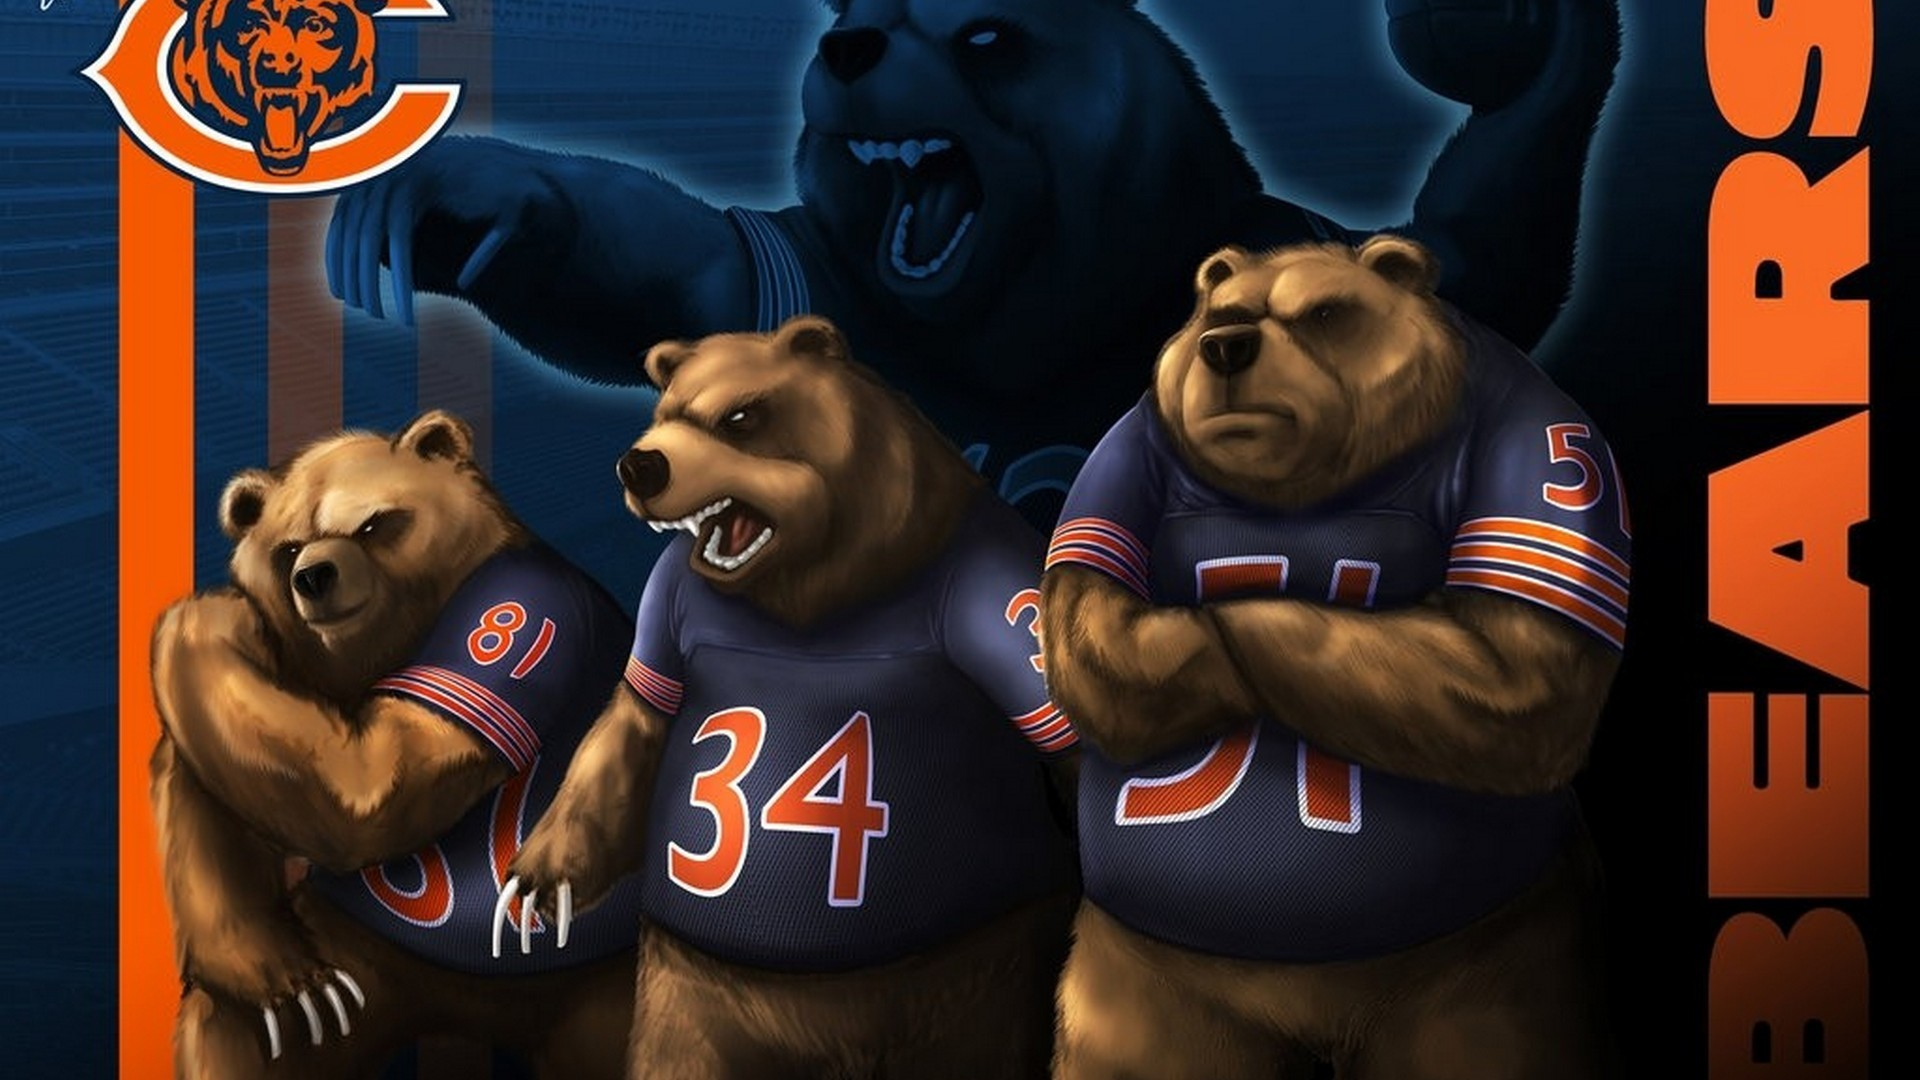 1920x1080 HD Backgrounds Chicago Bears